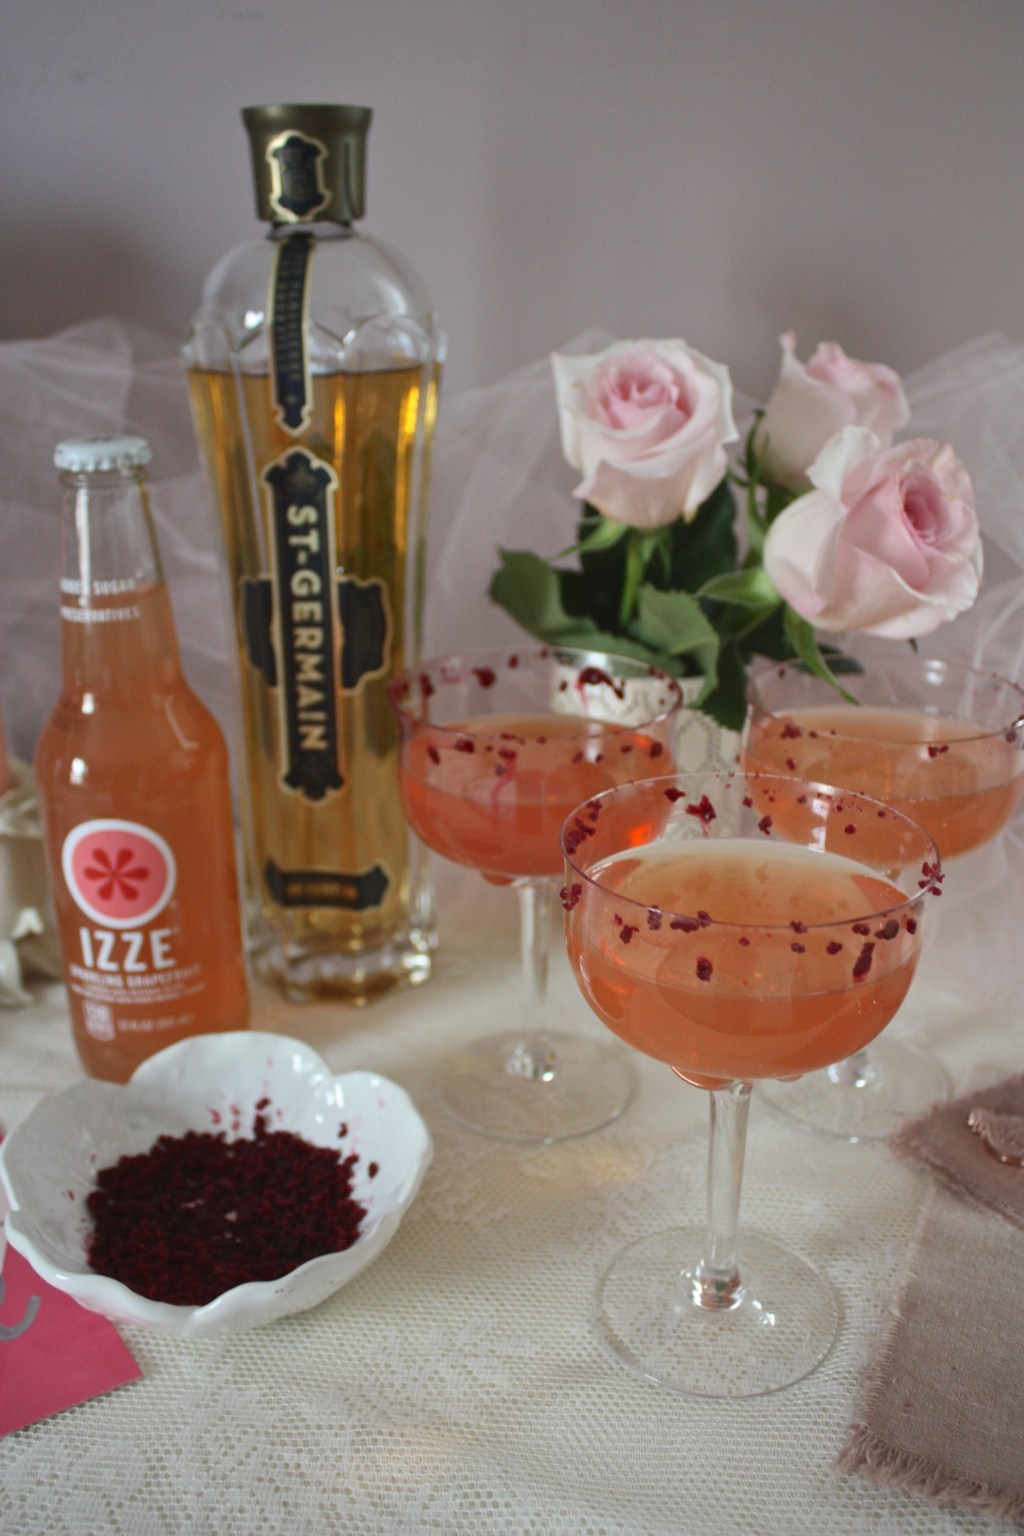 Grapefruit Elderflower Fizz Cocktail